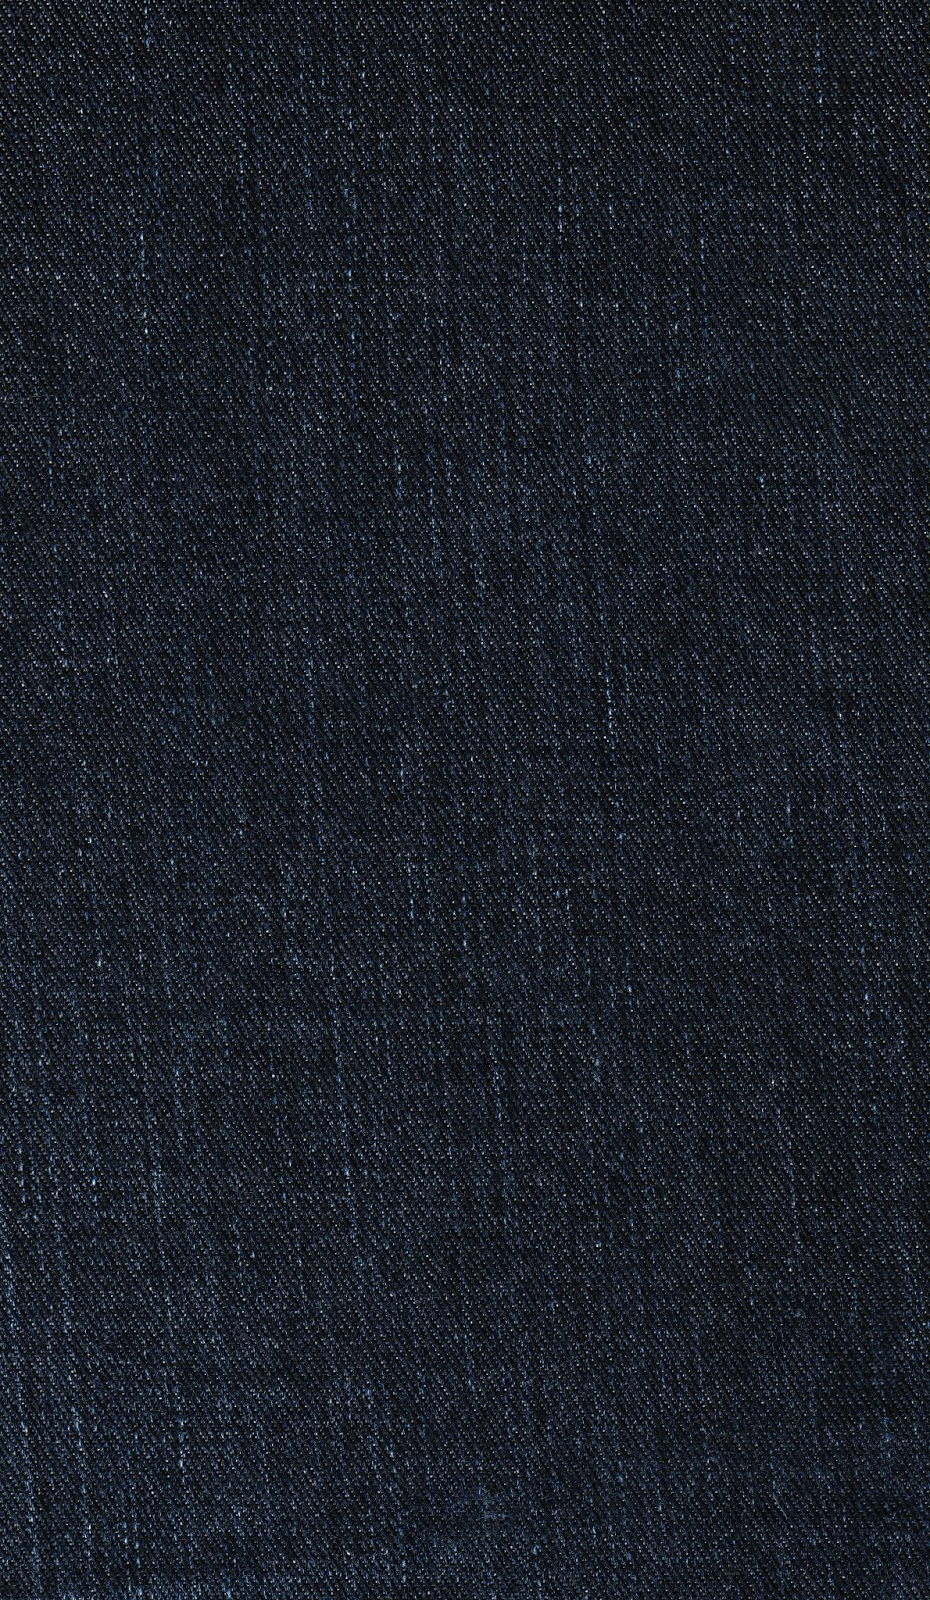 Meticulous Madness: Freebie Friday - Diverse Denim Textile Textures